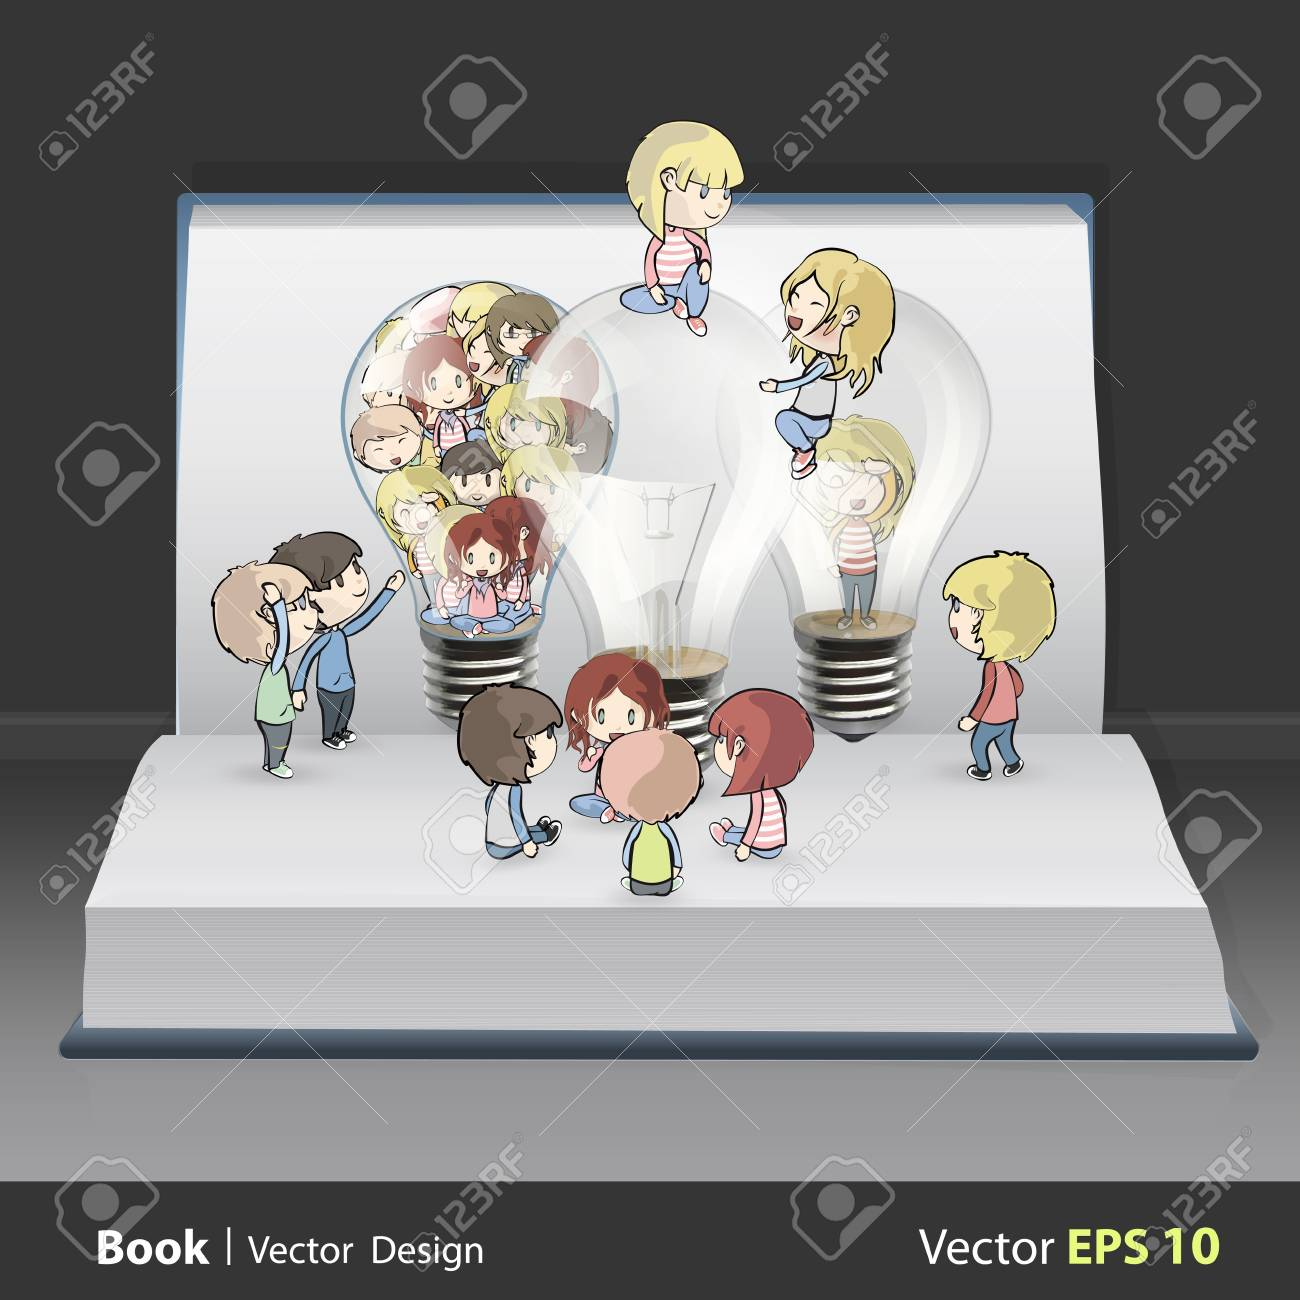 Several kids around bulb inside a book. Vector design. Stock Vector - 19355712